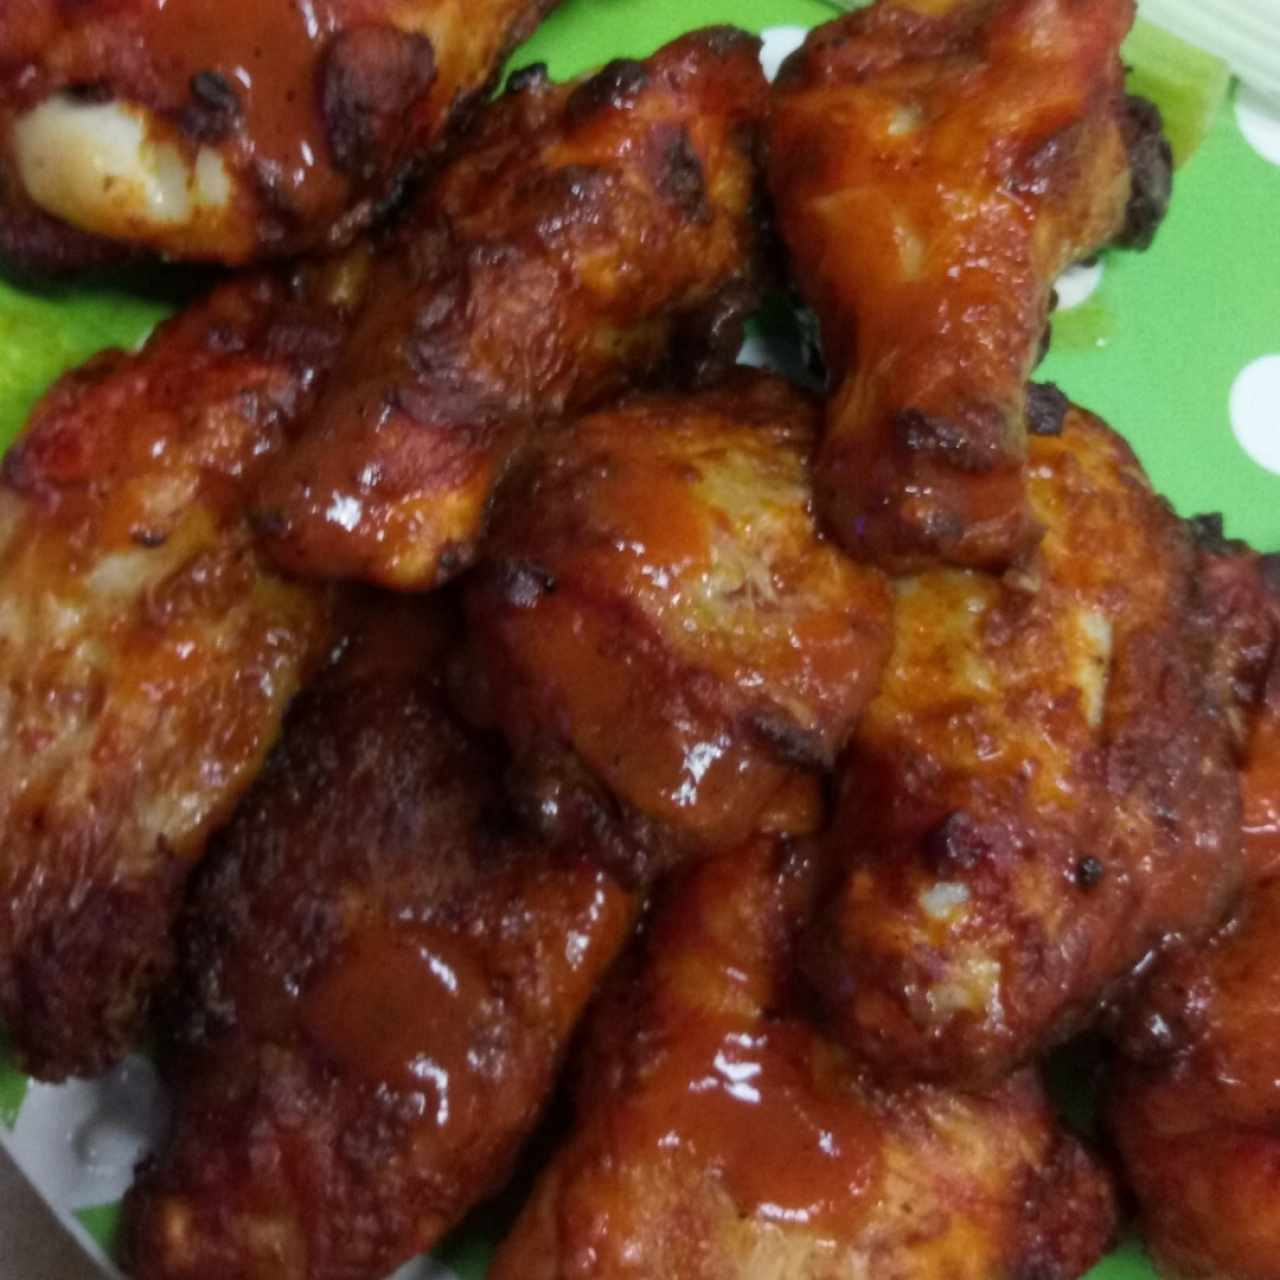 Bufalo wings